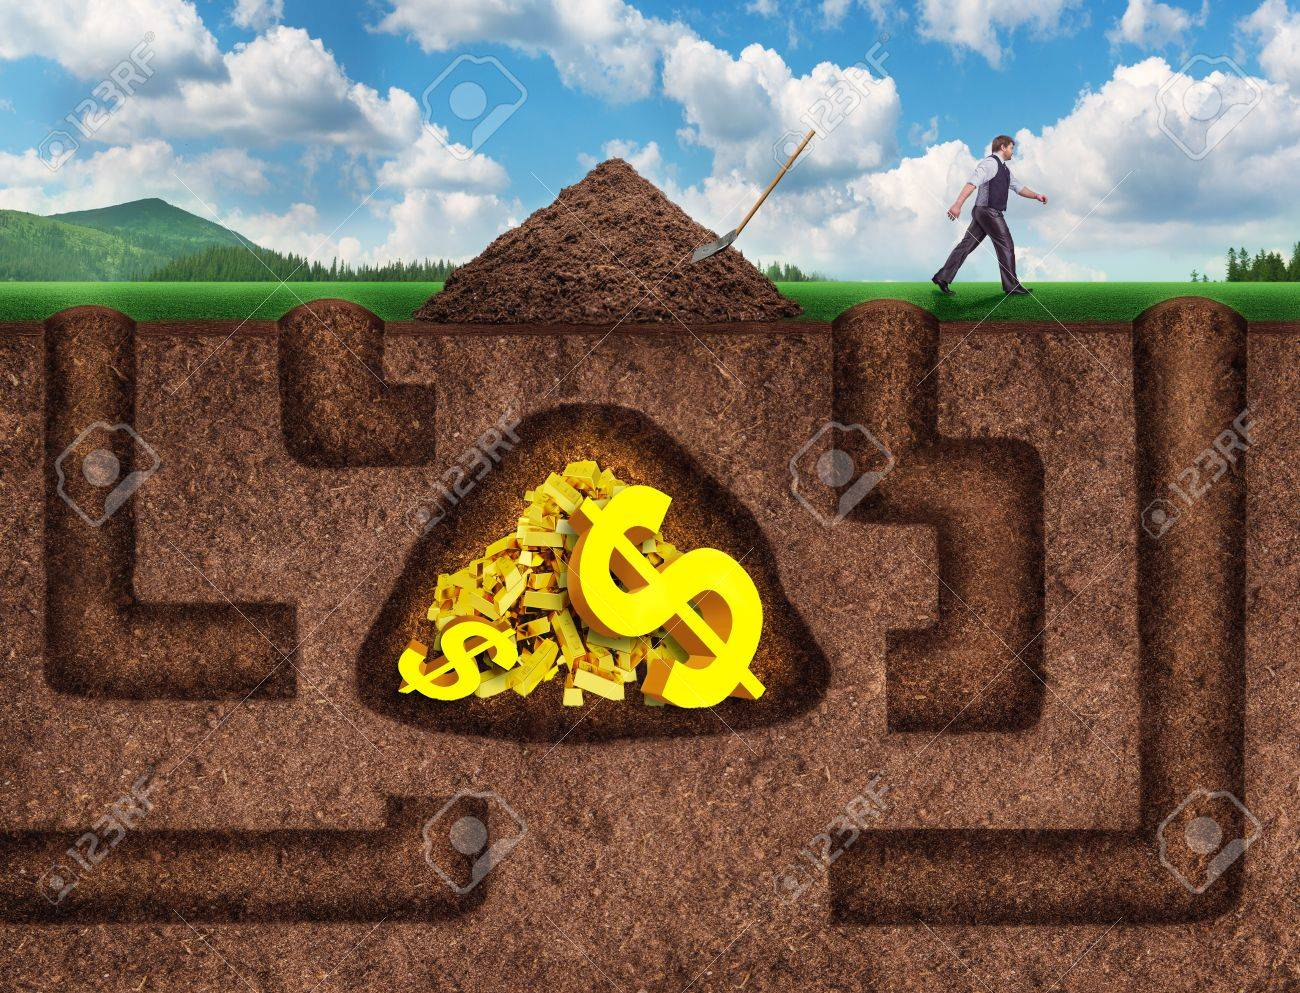 Businessman made many tunnels to get treasure underground, he gave up and went away - 42119219